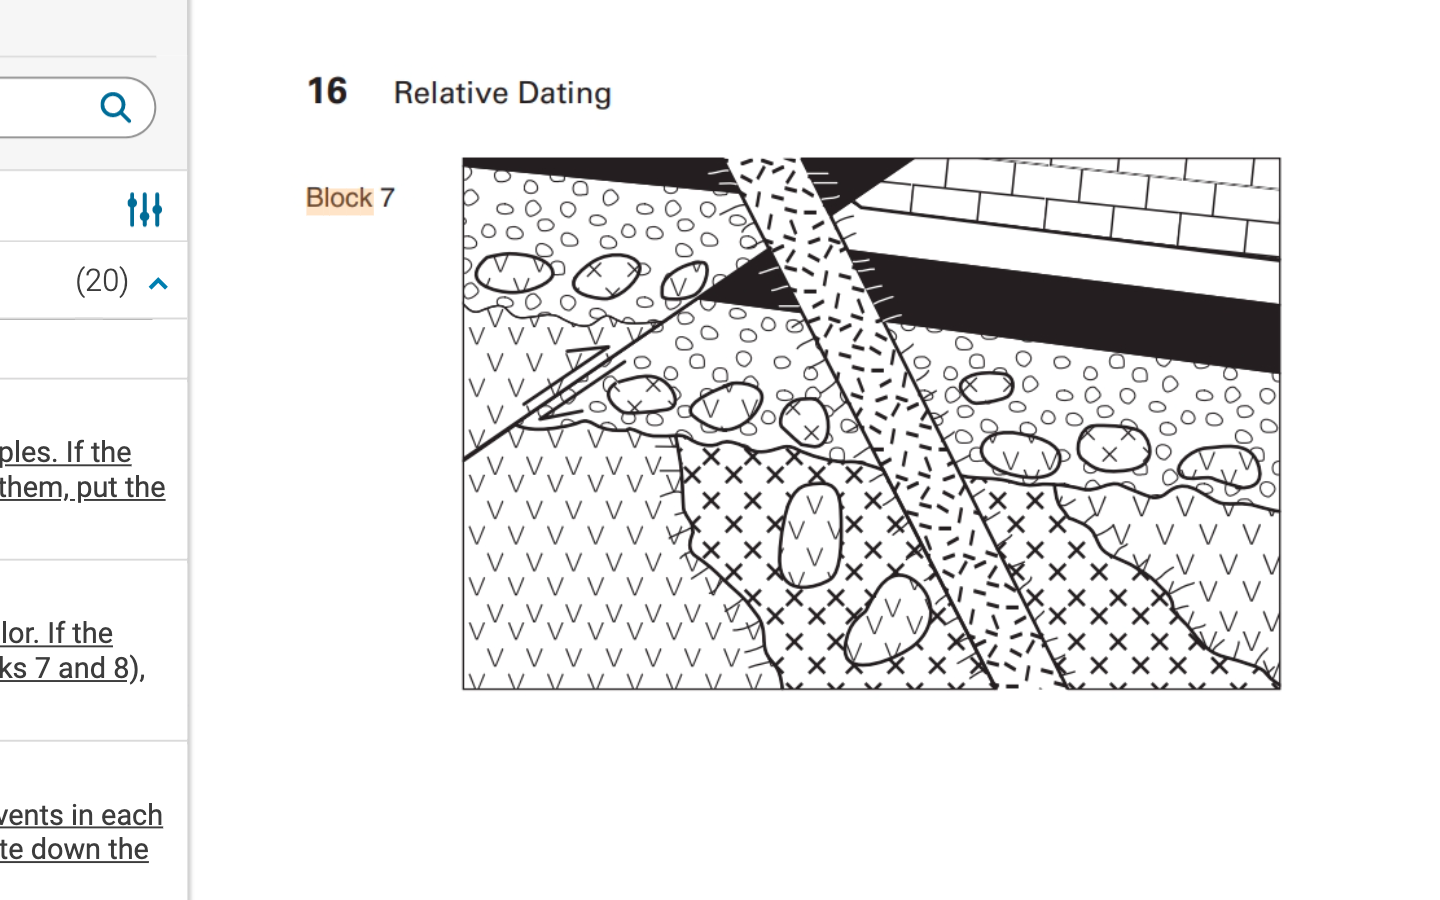 16 Q Relative Dating Block 7 (20) 000 ples. If the them, put the ti At .tt 바 ++ lor. If the ks 7 and 8), Jents in each te dow